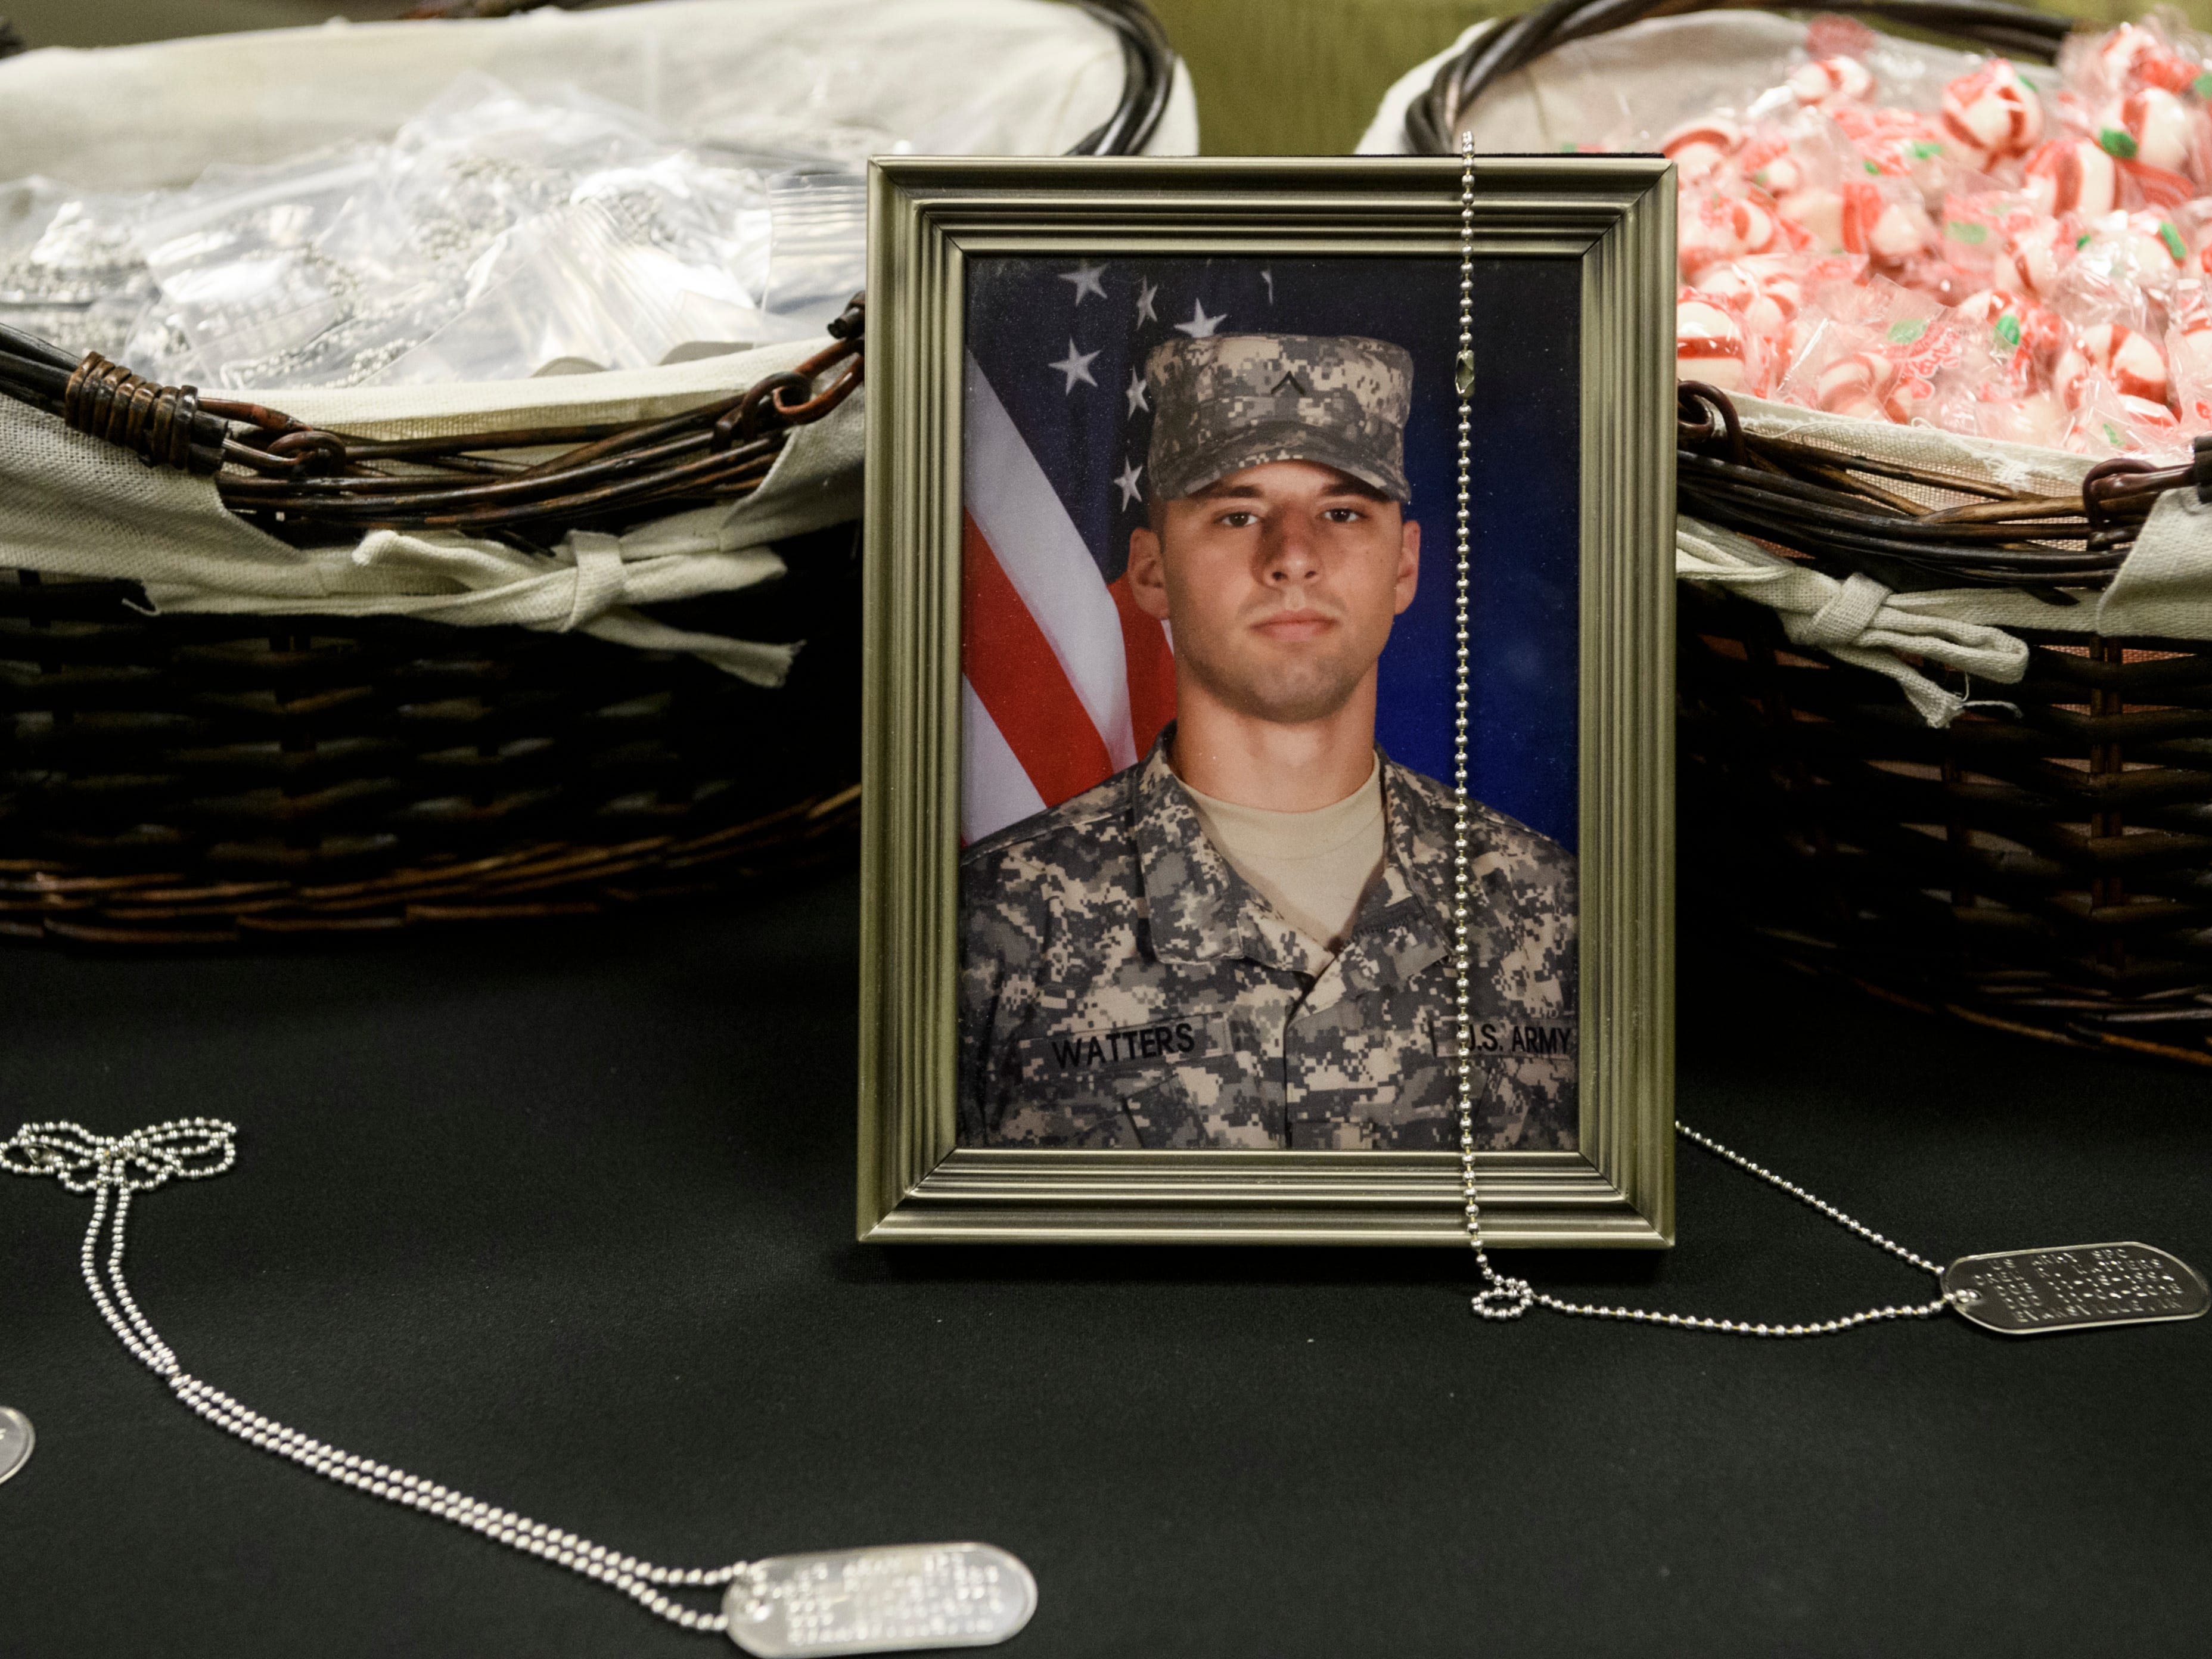 Commemorative dog tags sit out for people to take at the visitation for U.S. Army Sgt. Drew Watters inside Evansville's Christian Fellowship Church, Tuesday afternoon, Nov. 13, 2018.